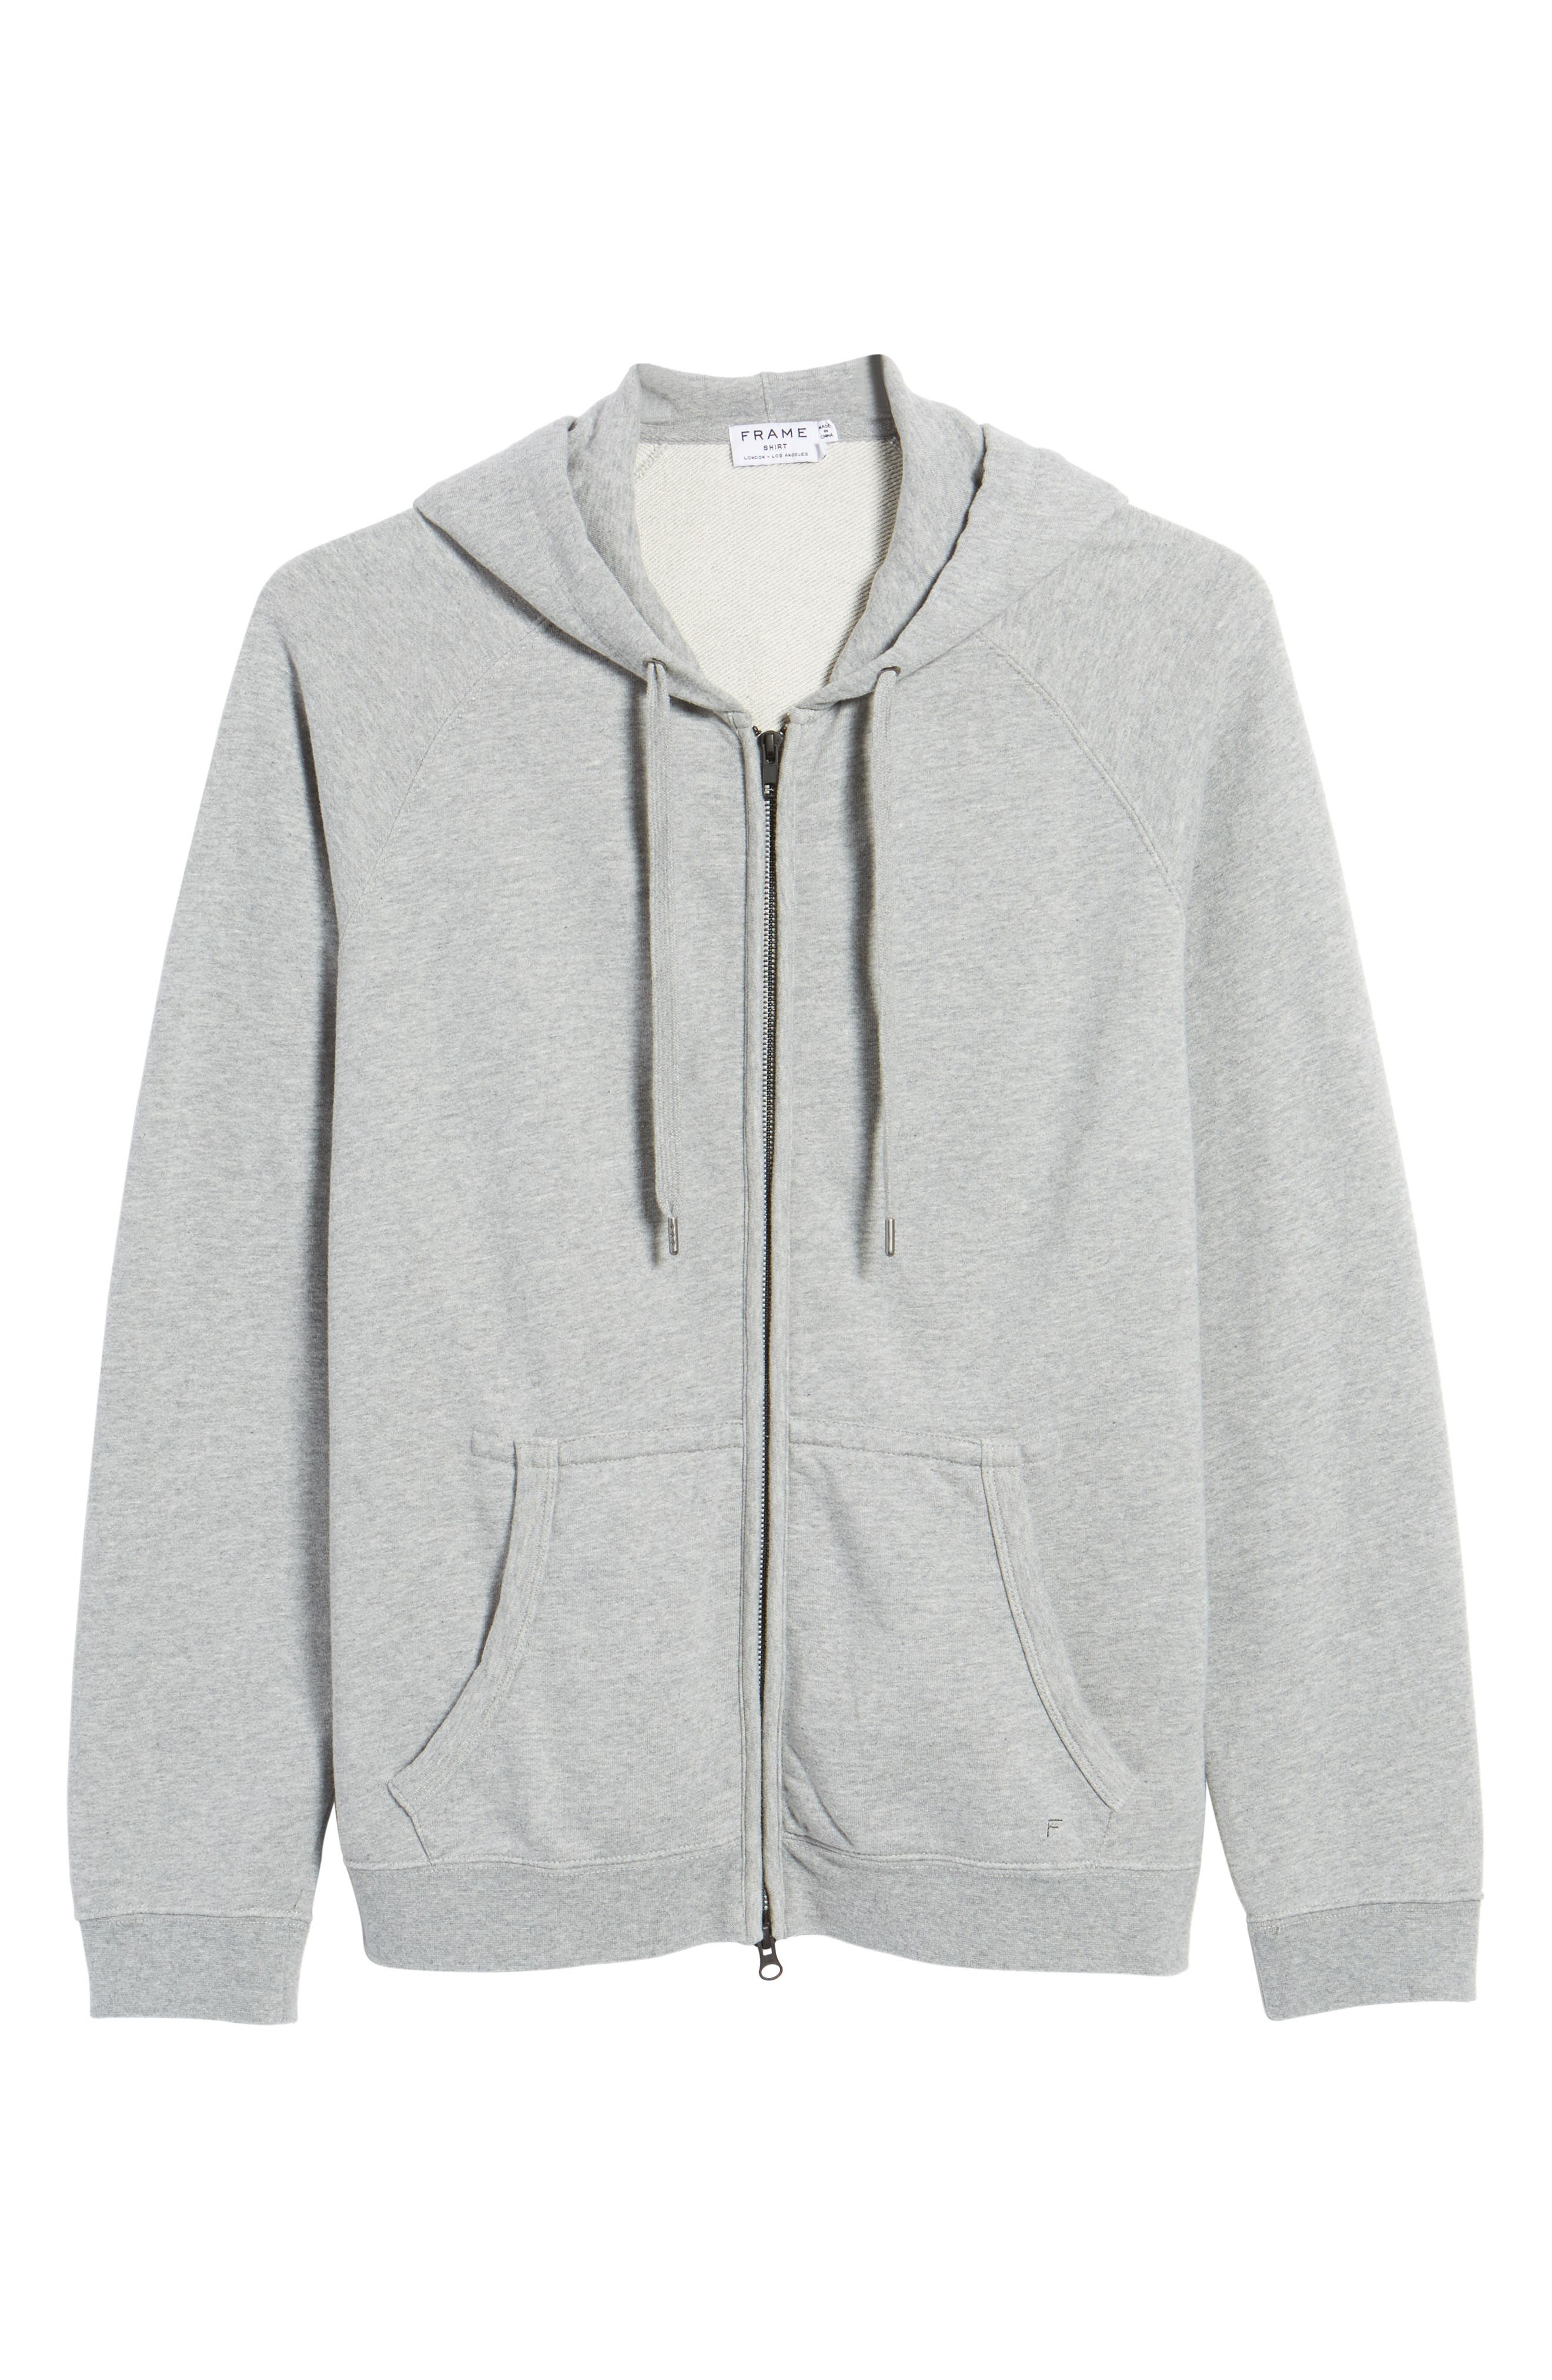 French Terry Sweatshirt,                             Alternate thumbnail 6, color,                             001